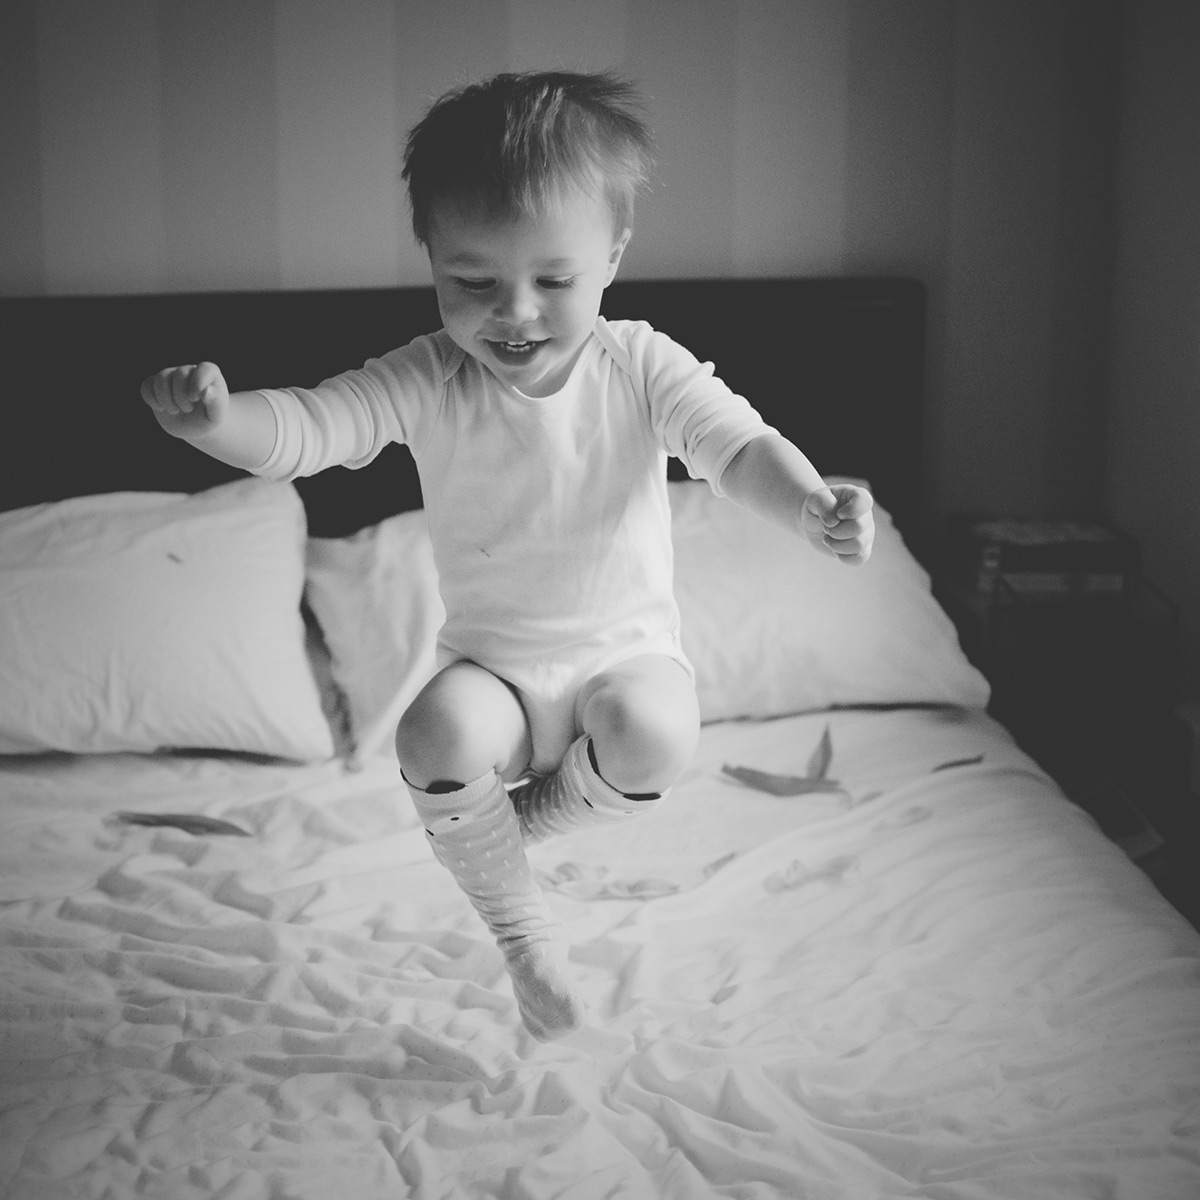 Our month in insta-snaps; April 2016 - Toddler jumping on bed in the air, action shot taken with Nikon D3300